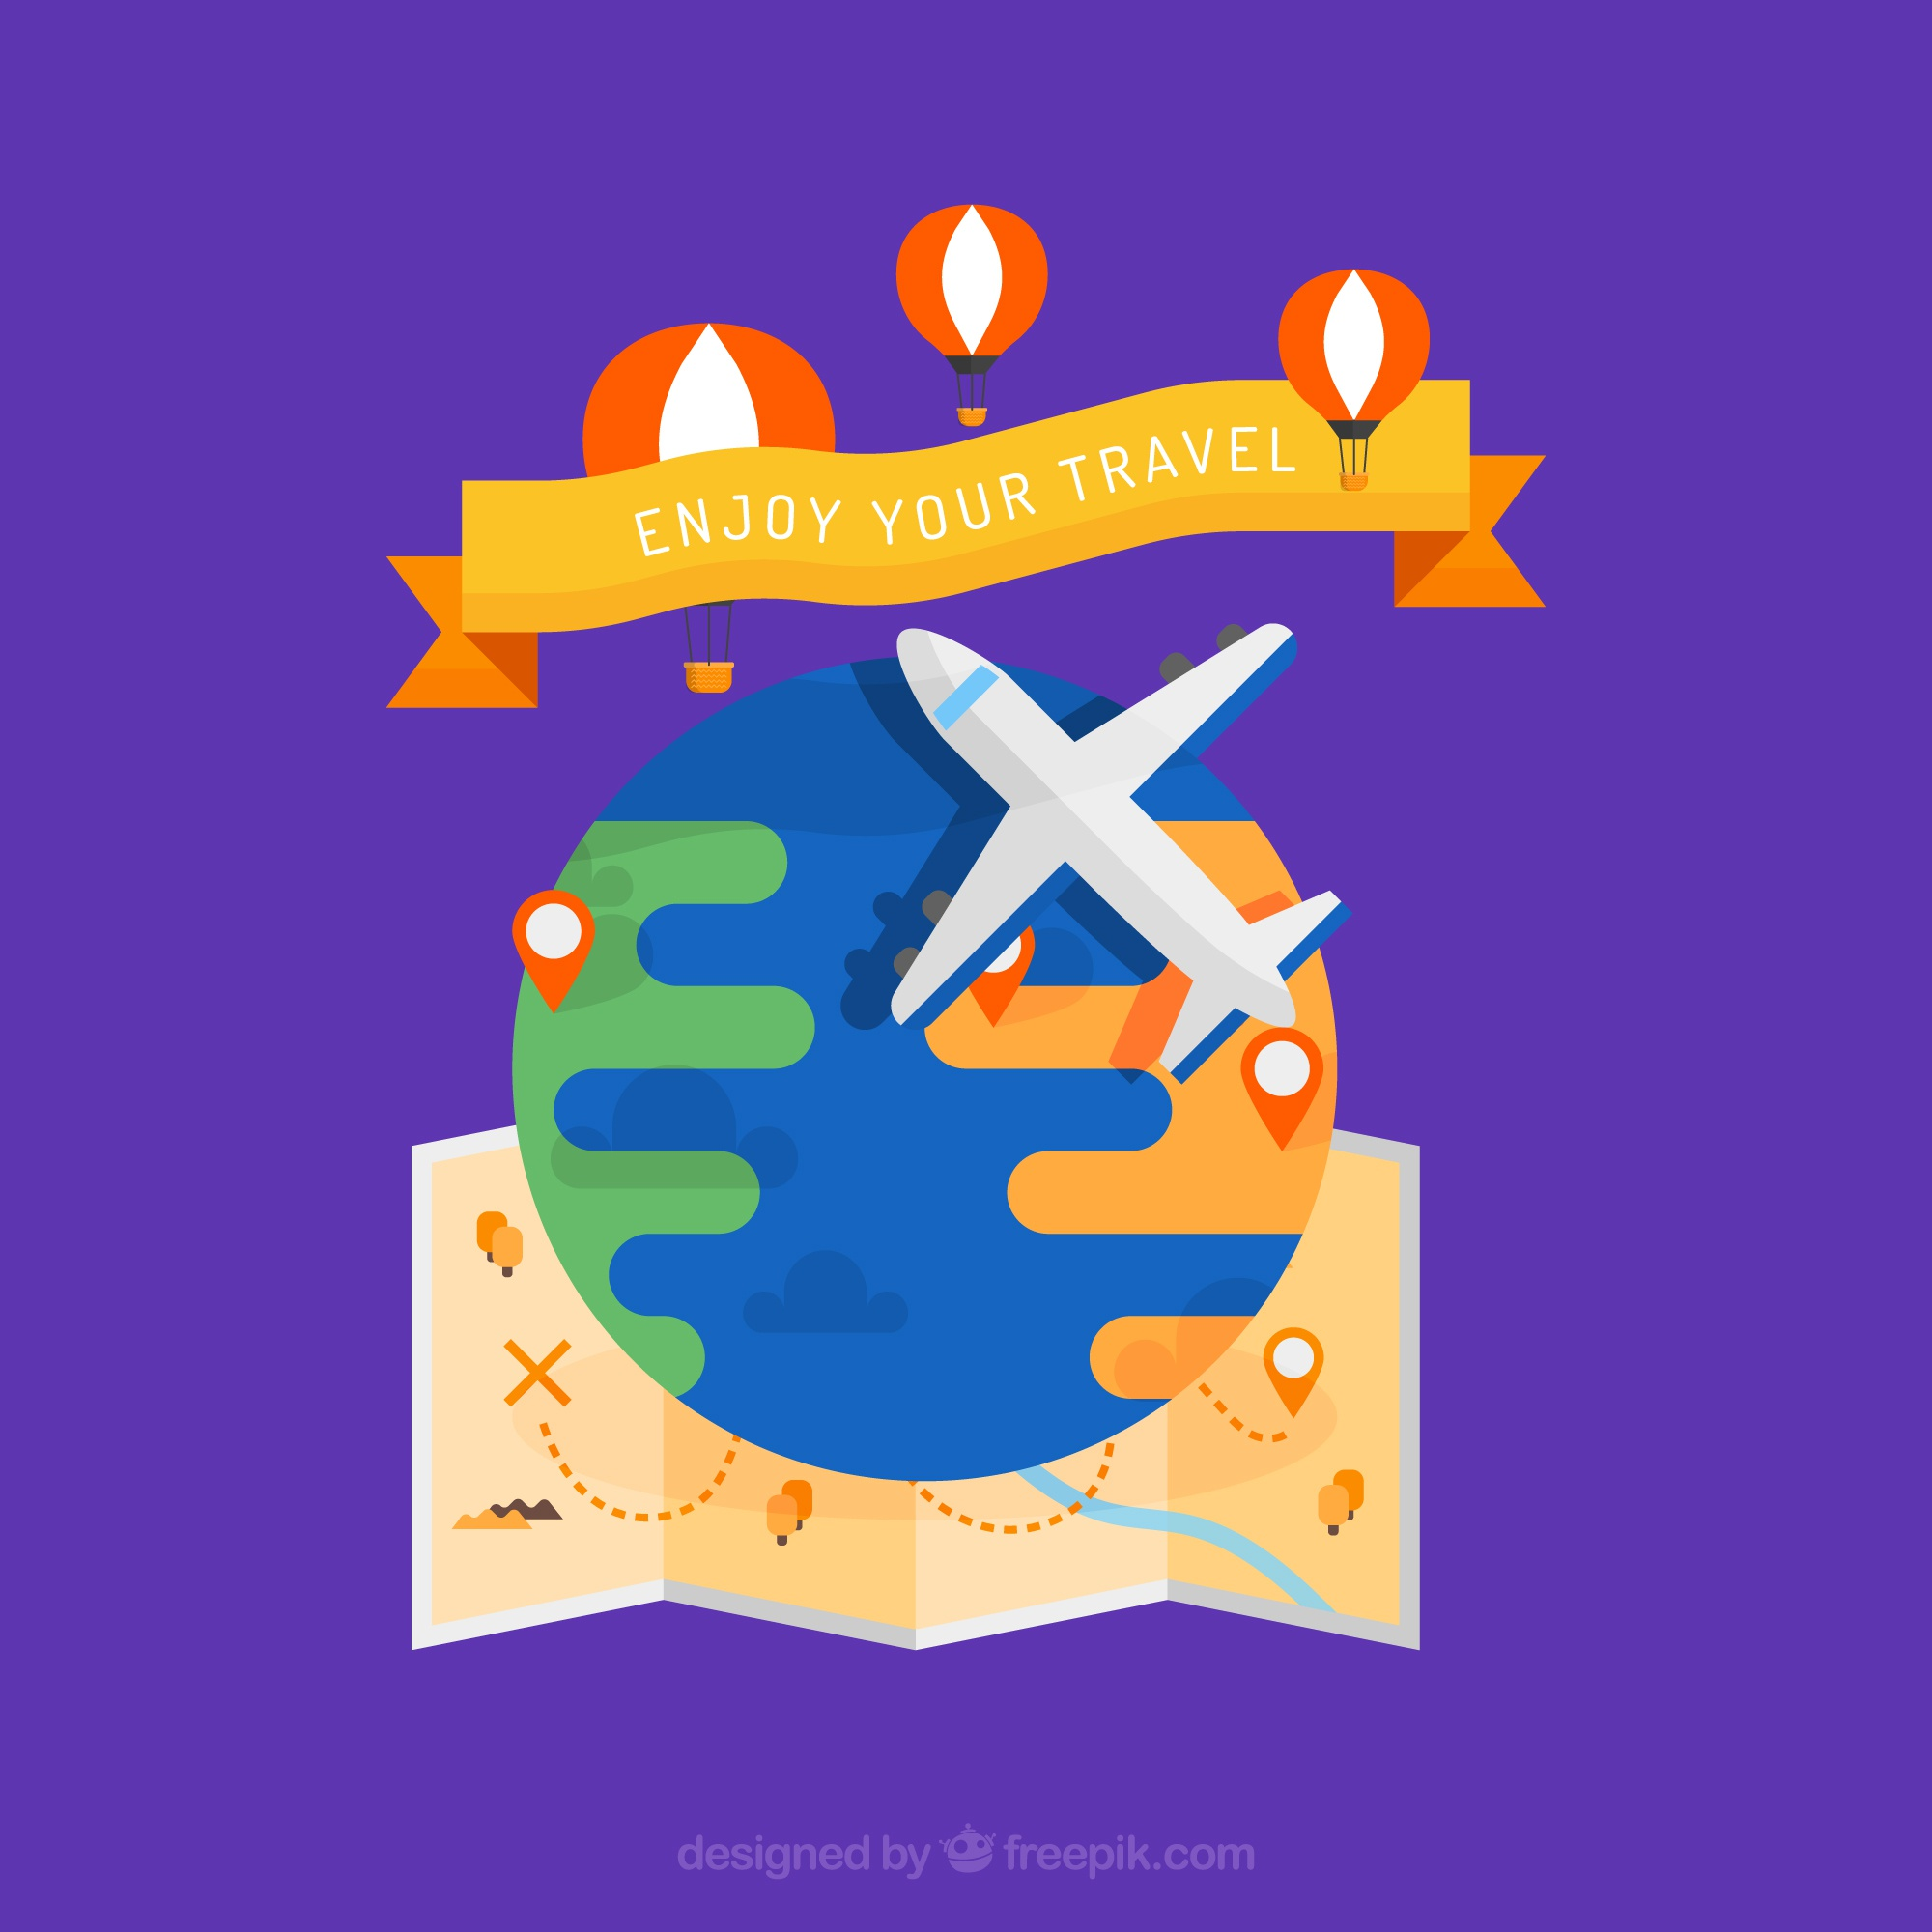 Airplane background with map and hot air balloons in flat design